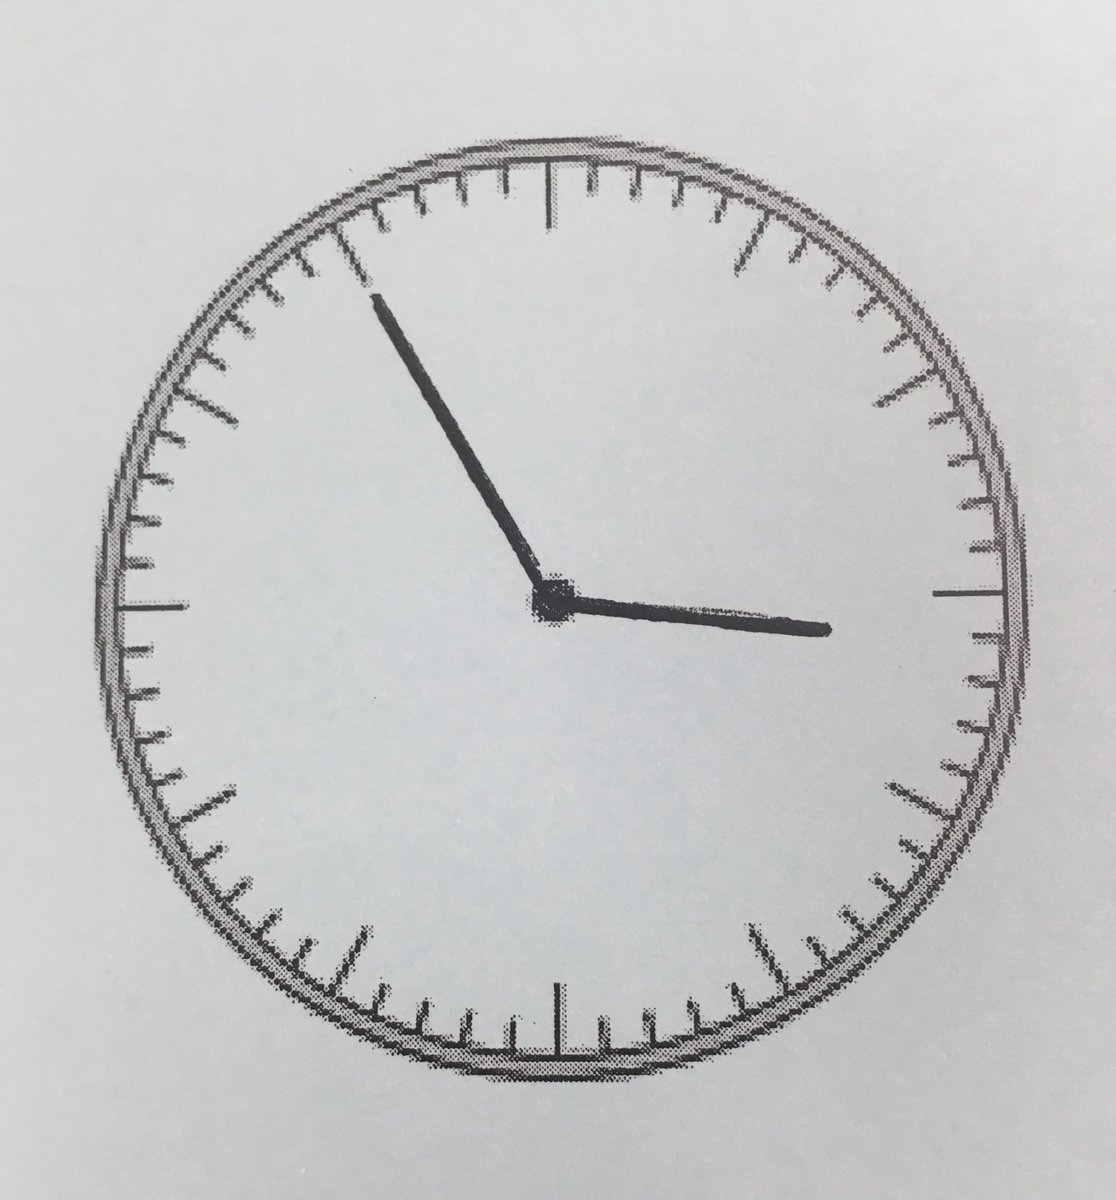 Mark Chubb On Twitter Heres A Clock With No Numbers Im Not Sure